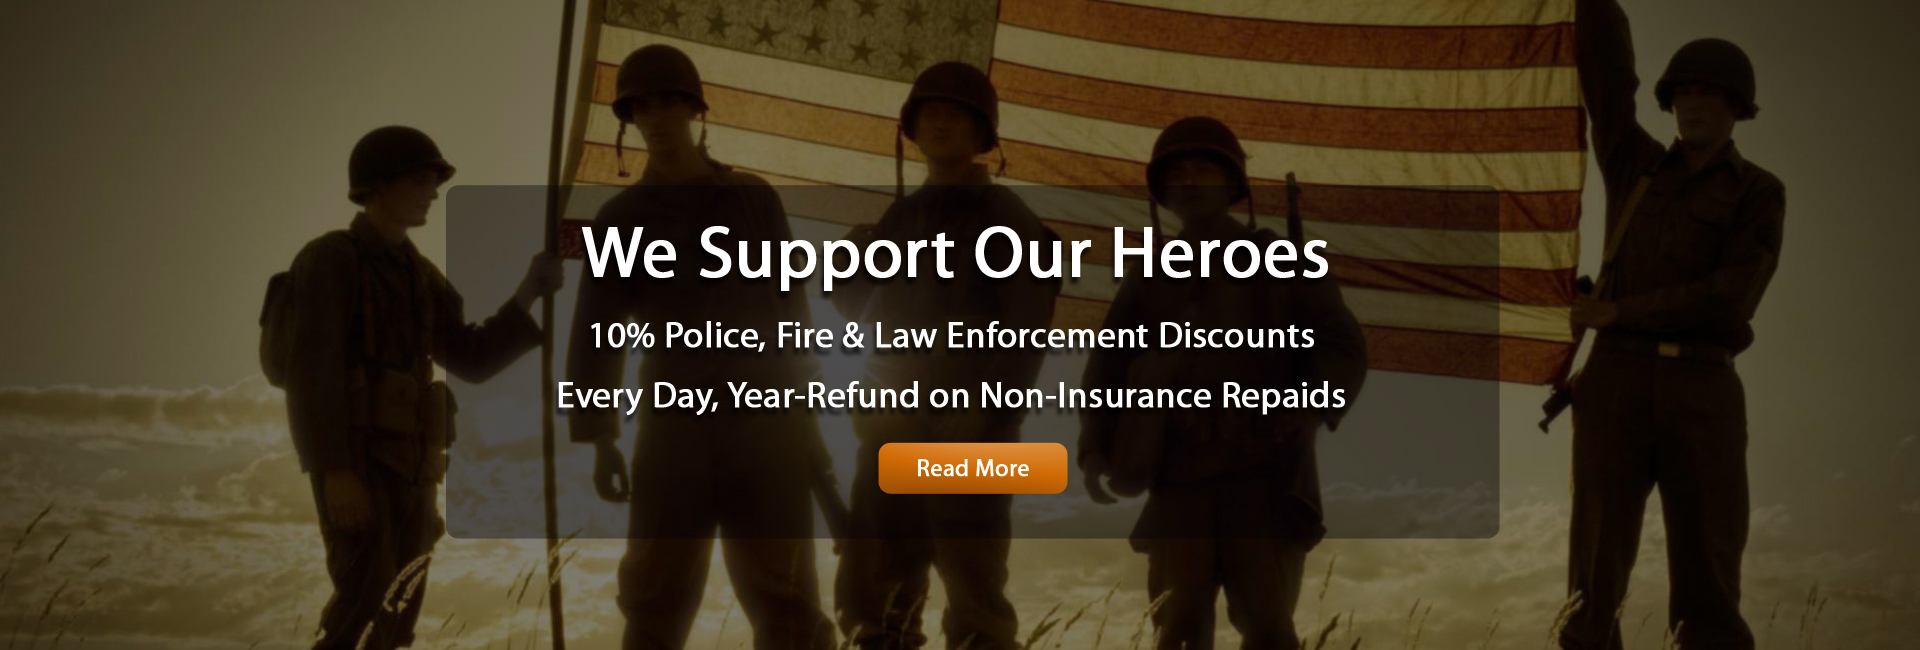 Military, Fire and LEO discounts